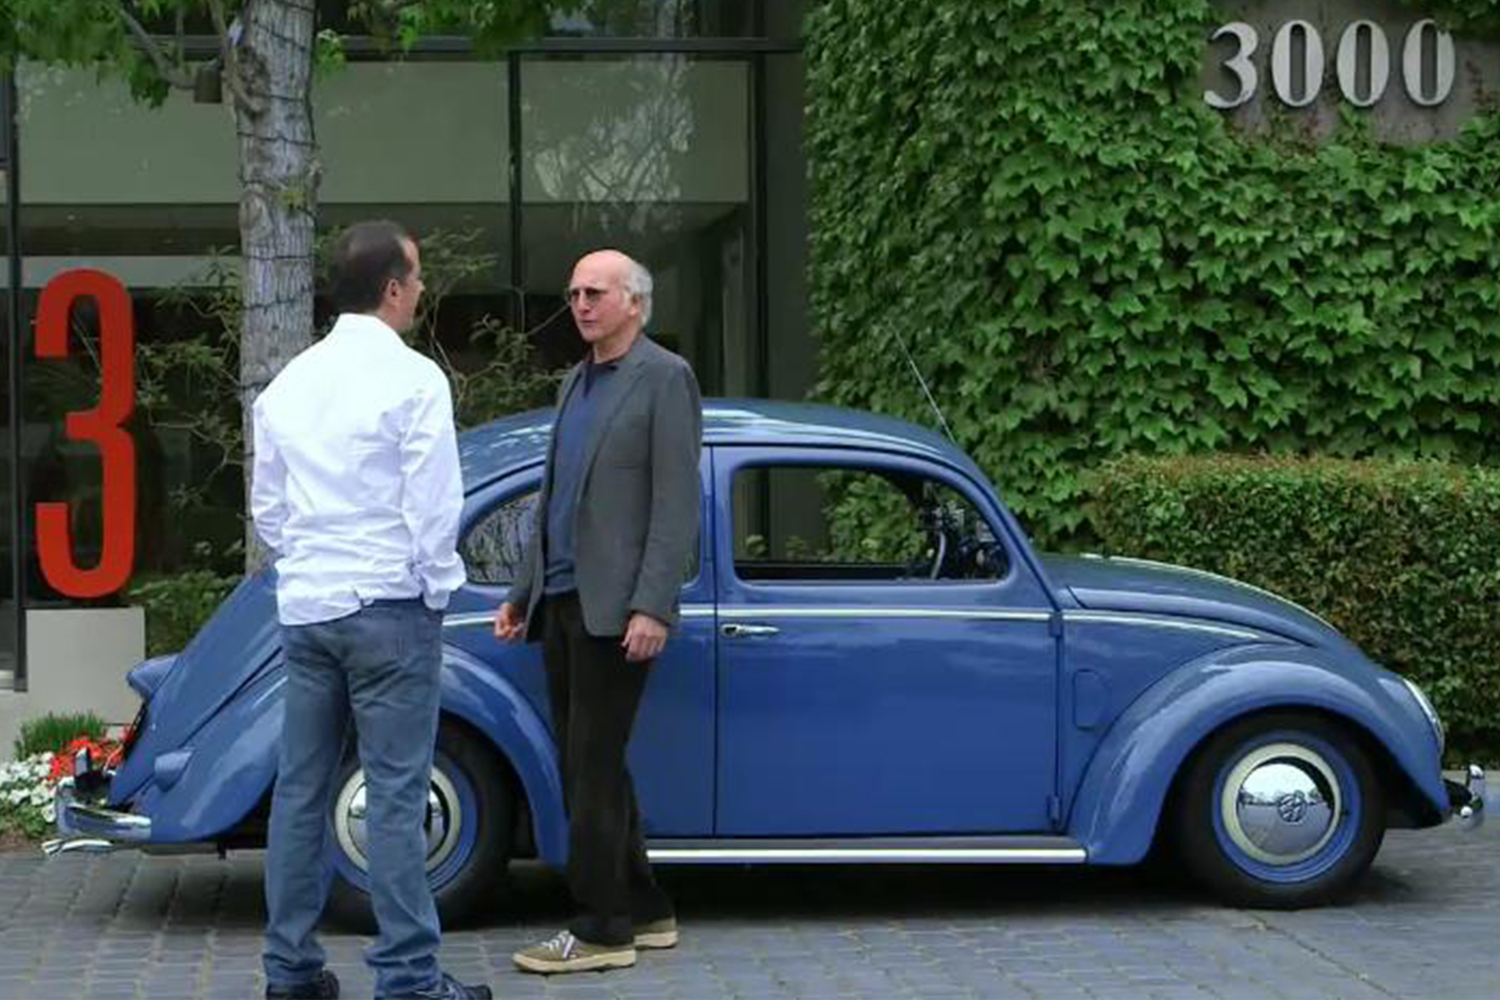 1952 Volkswagen Beetle Larry David Comedians in Cars